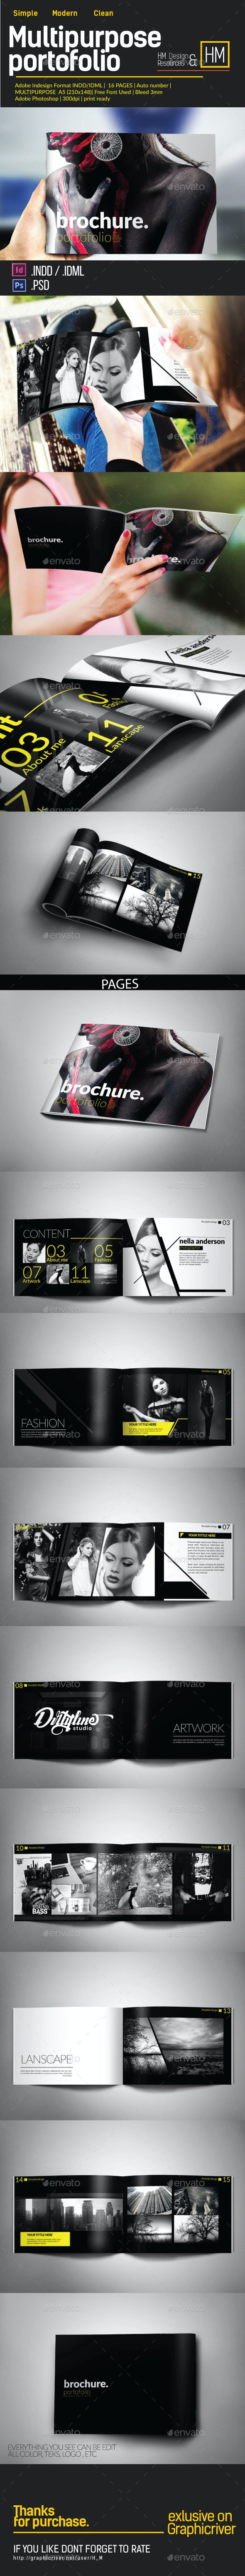 MODERN BROCHURE CATALOG OR PORTOFOLIO DESIGN - Portfolio Brochures